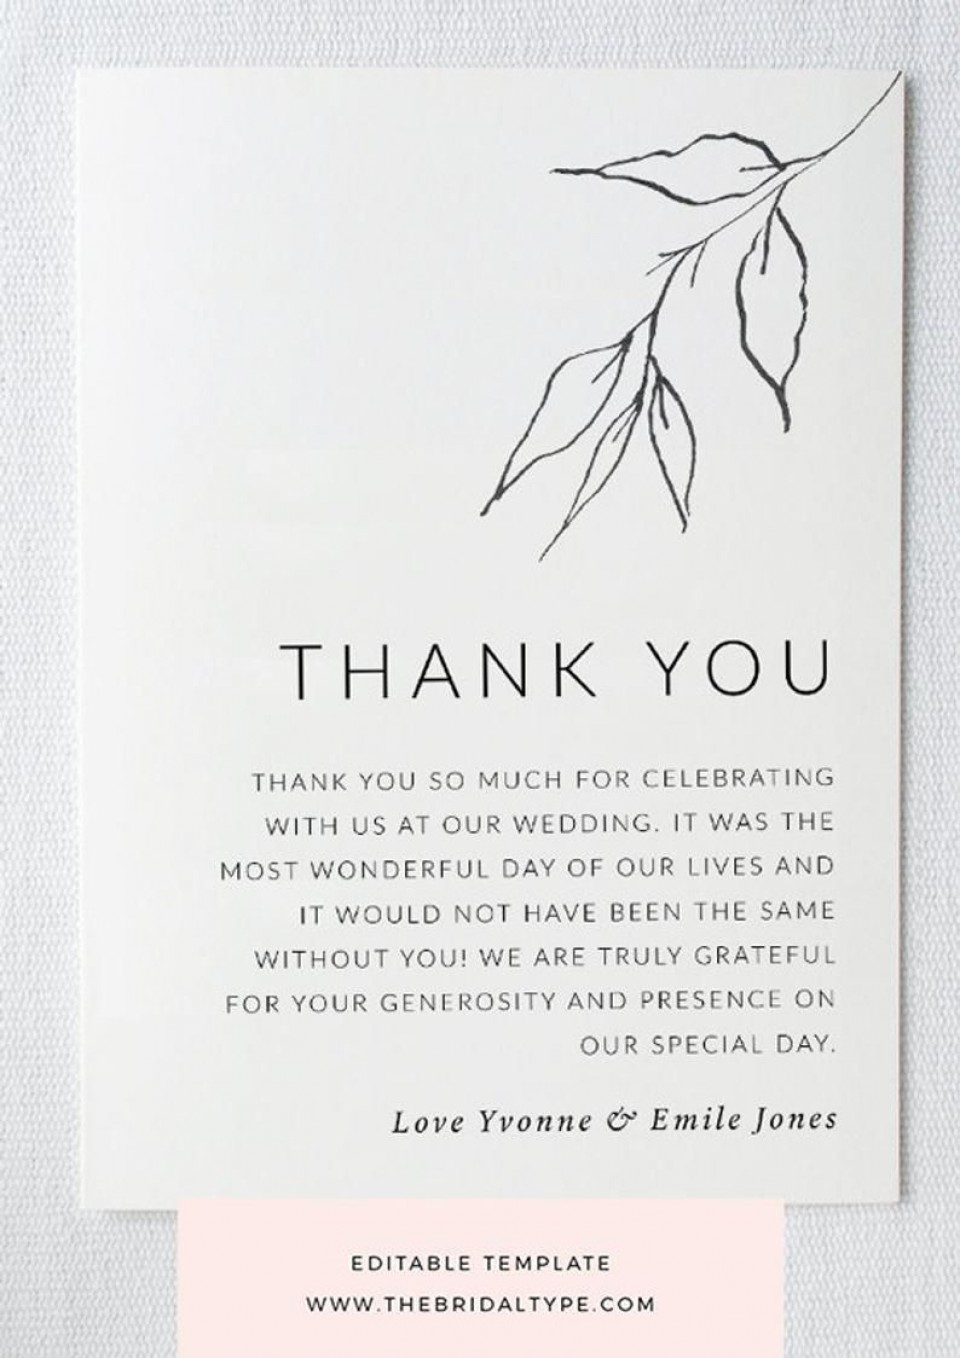 004 Unbelievable Wedding Thank You Card Template High Definition  Photoshop Word Etsy960